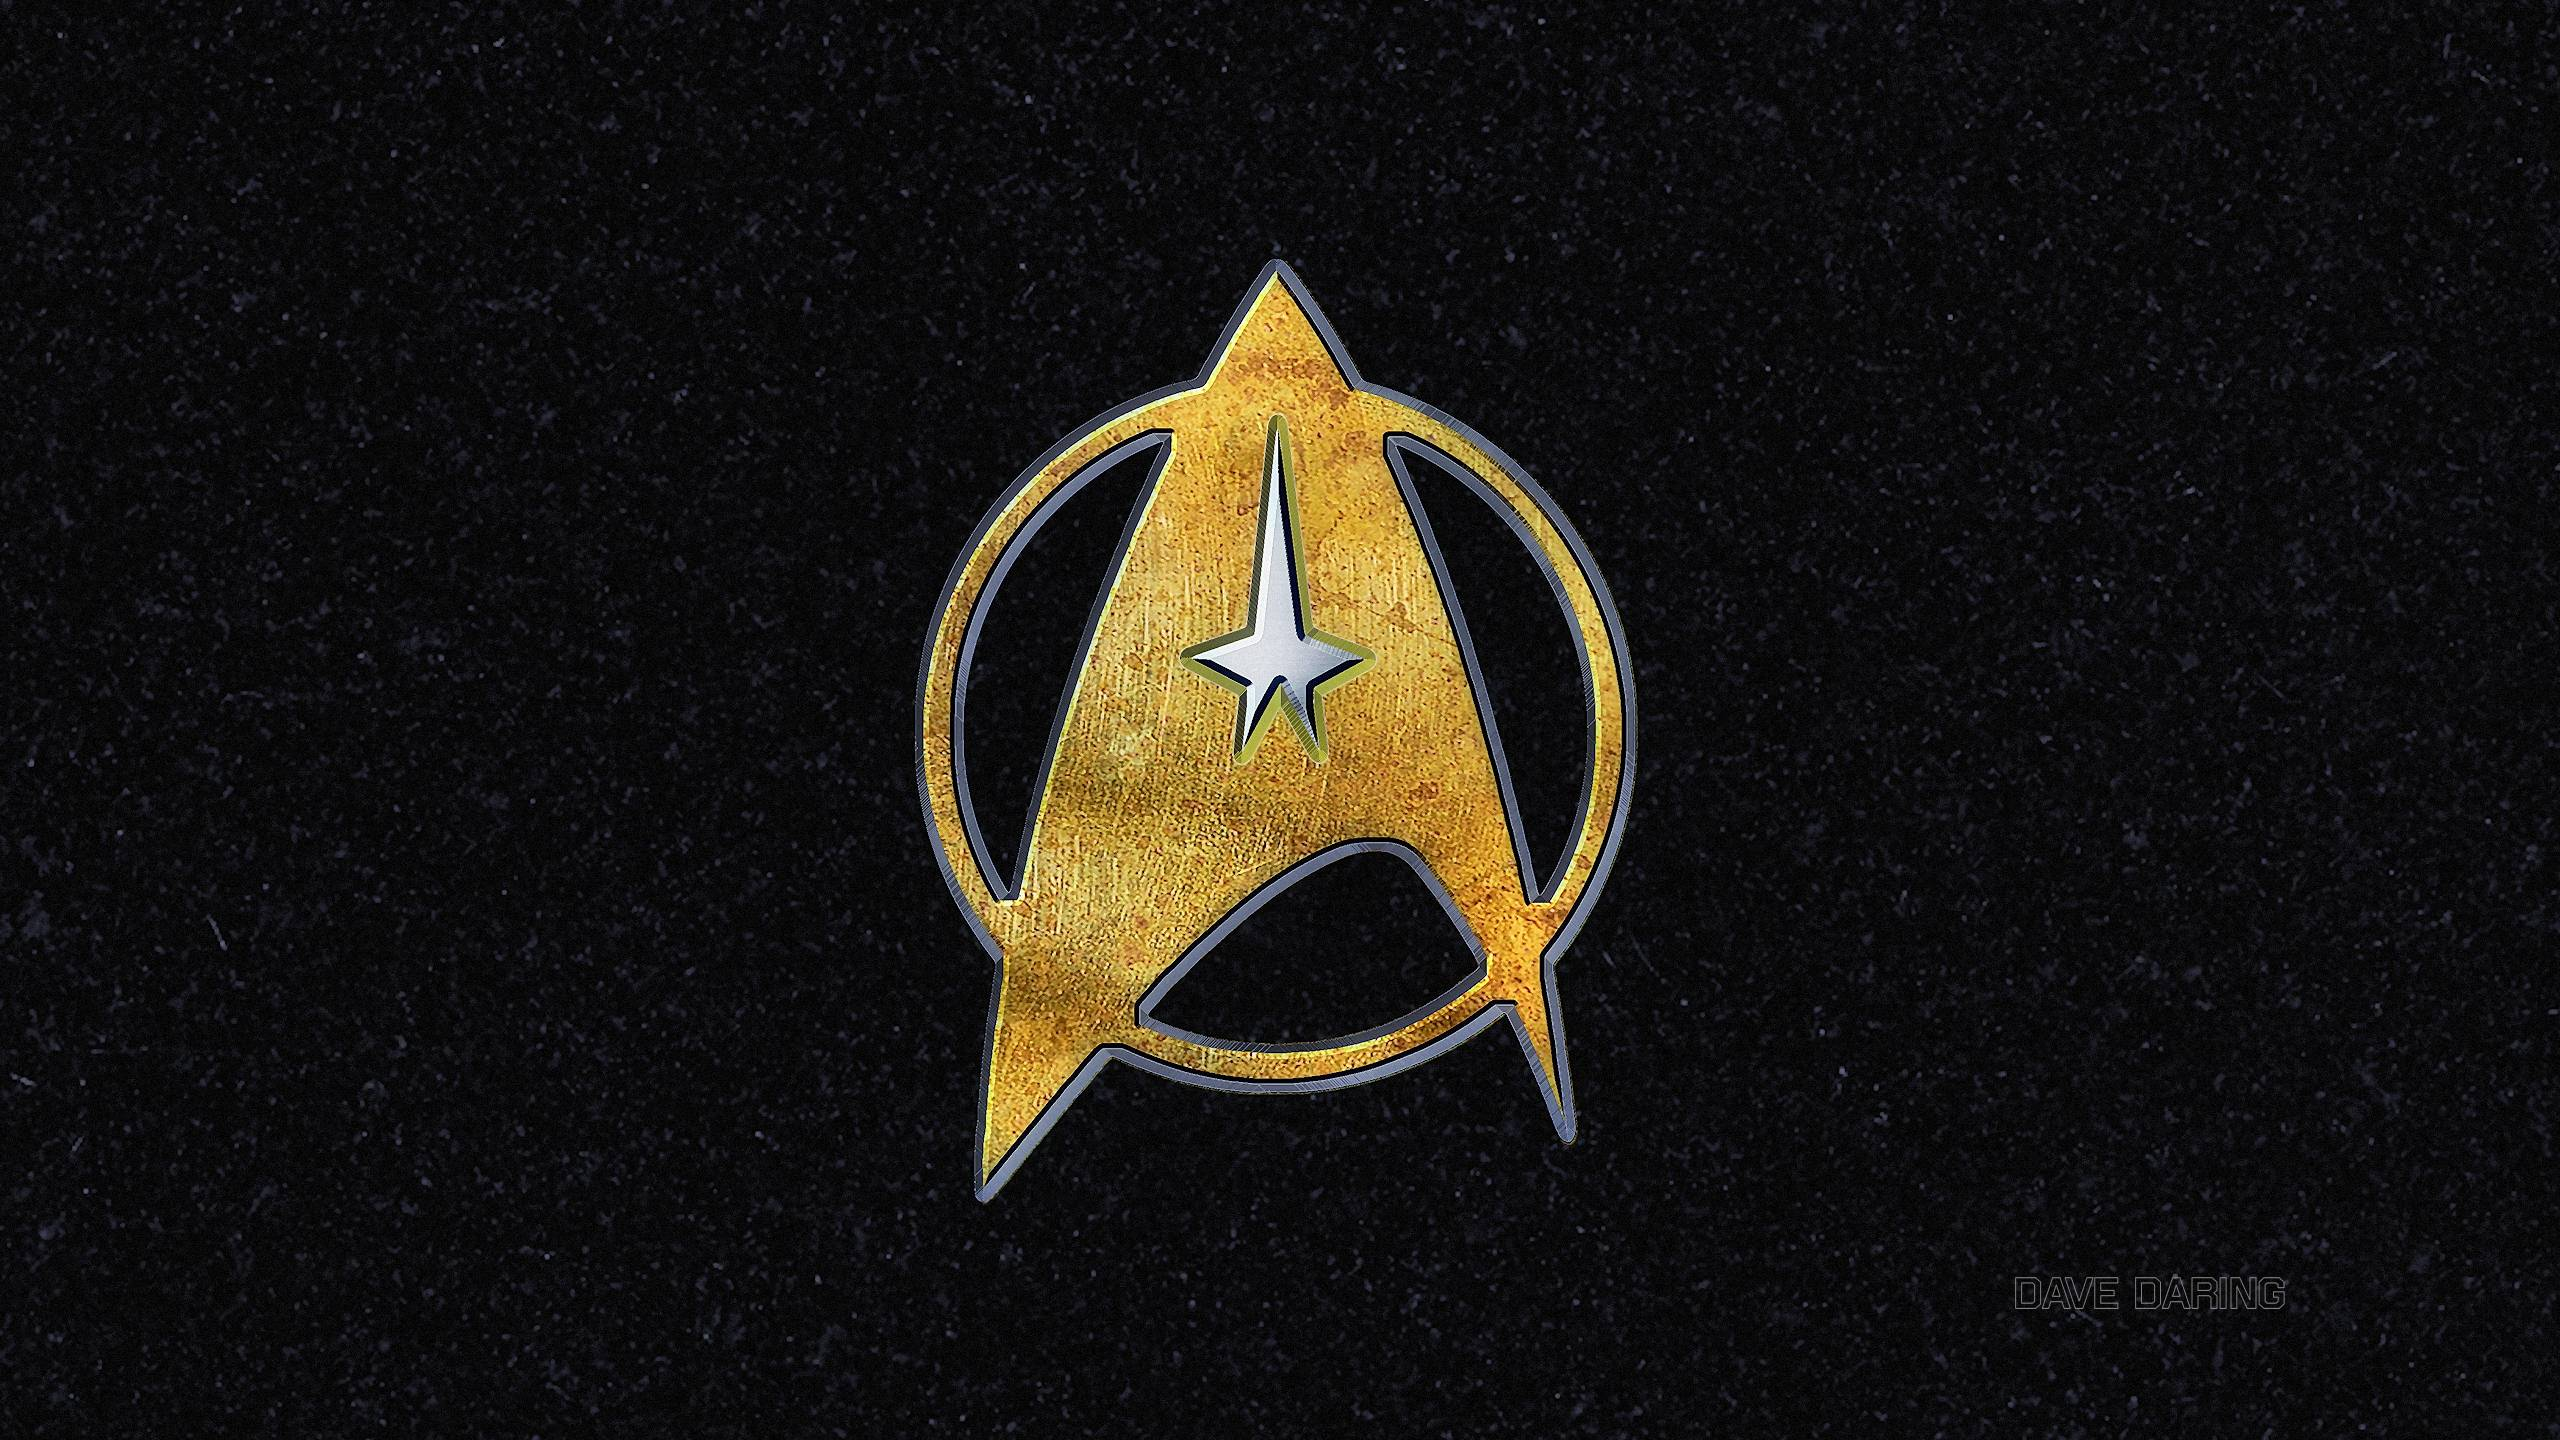 Star Trek Symbol In Brass Silver And Black Granite By Dave